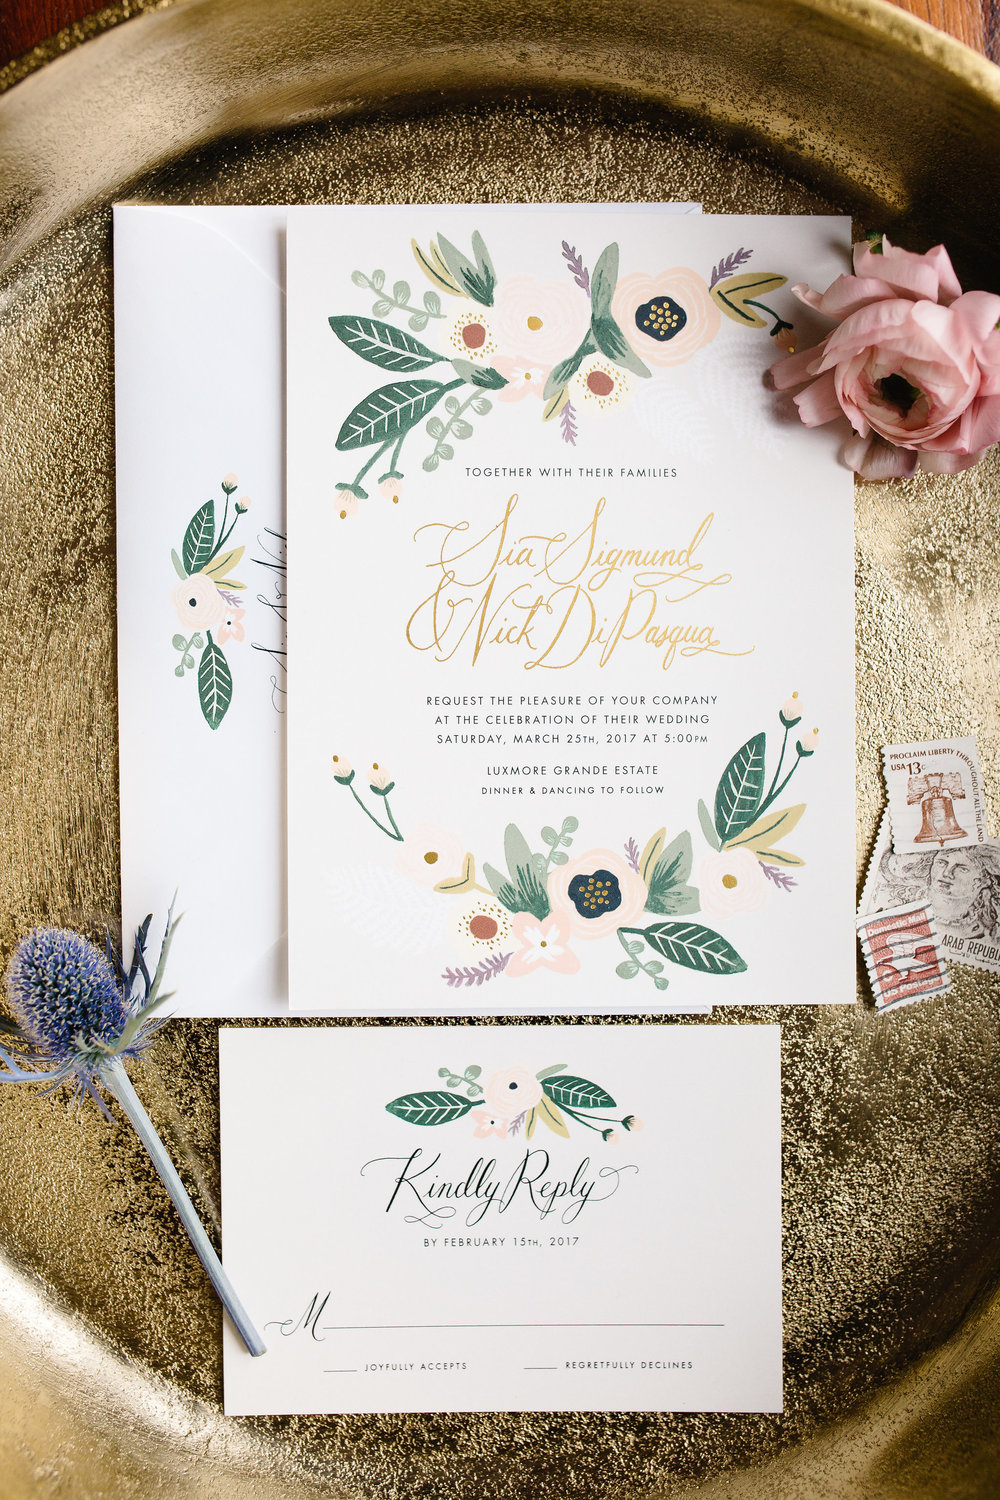 Rifle Paper Co. Botanical Wedding Invitations  Orlando Wedding Planner Blue Ribbon Weddings  Orlando Wedding Photographer JP Pratt Photography  Wedding Ceremony & Reception at Luxmore Grande Estate